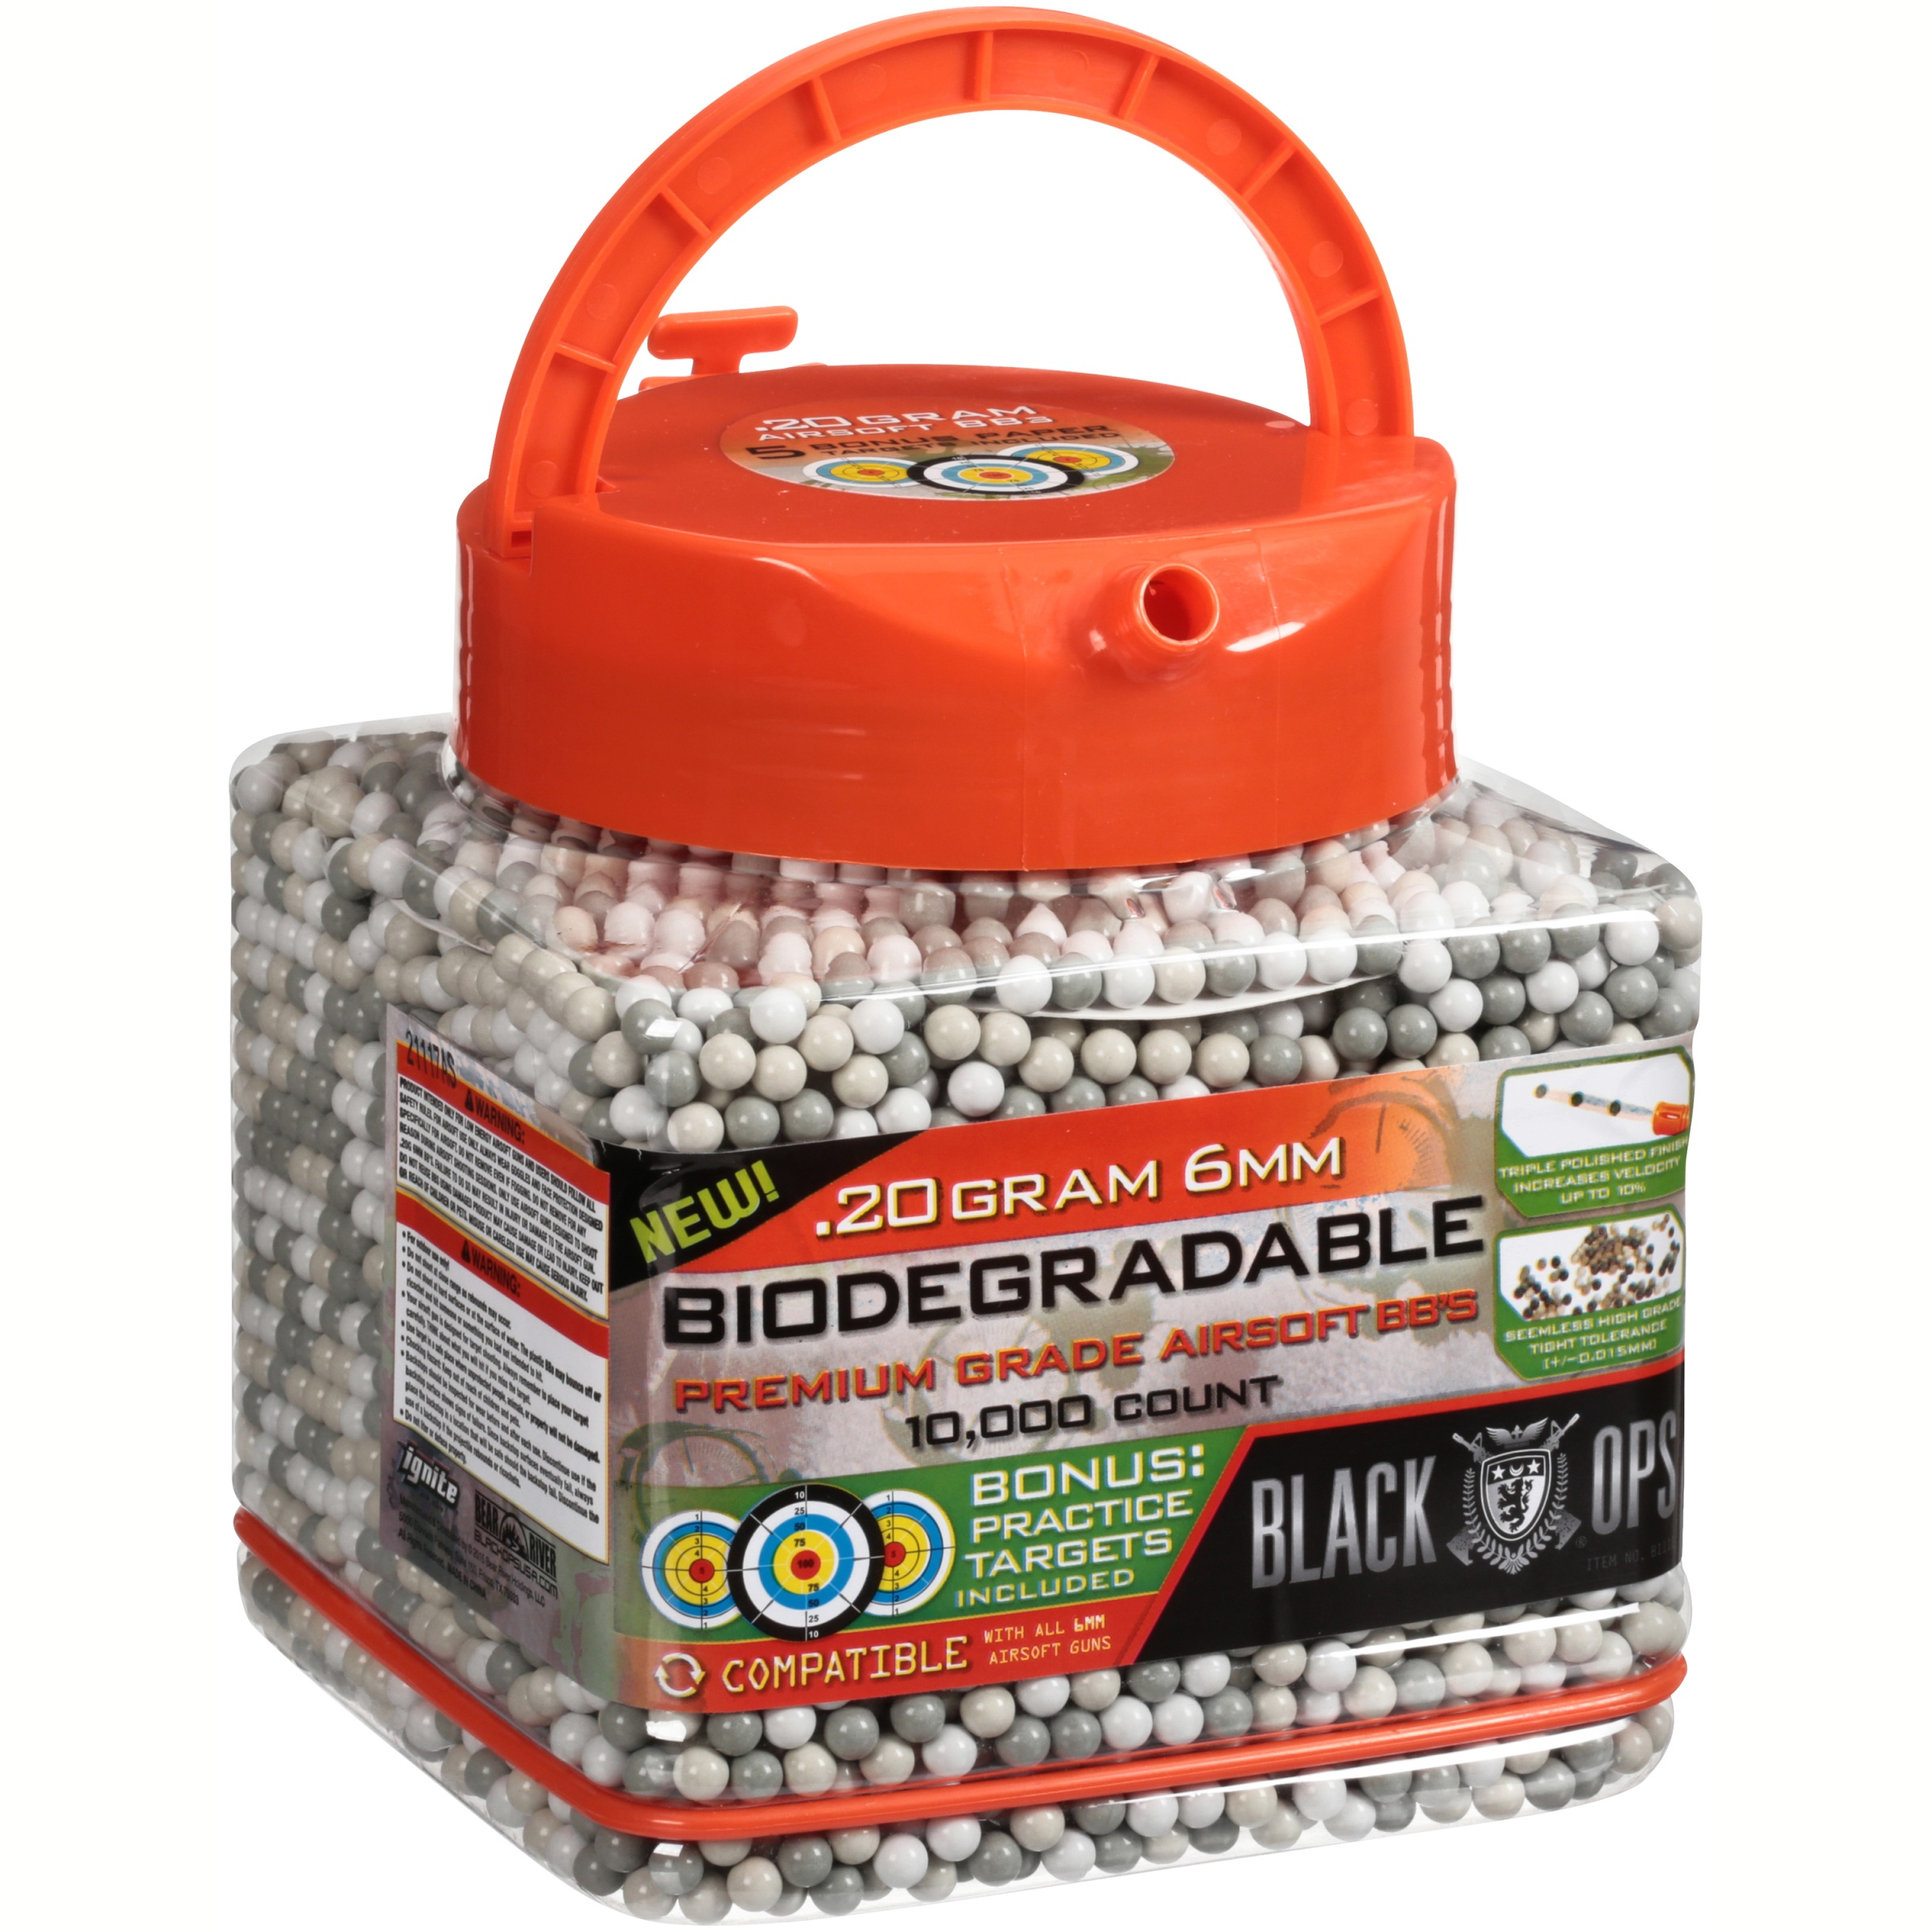 Black Ops Biodegradable Premium Grade Airsoft BB's 10,000 ct Pail by Bear River Holdings, LLC